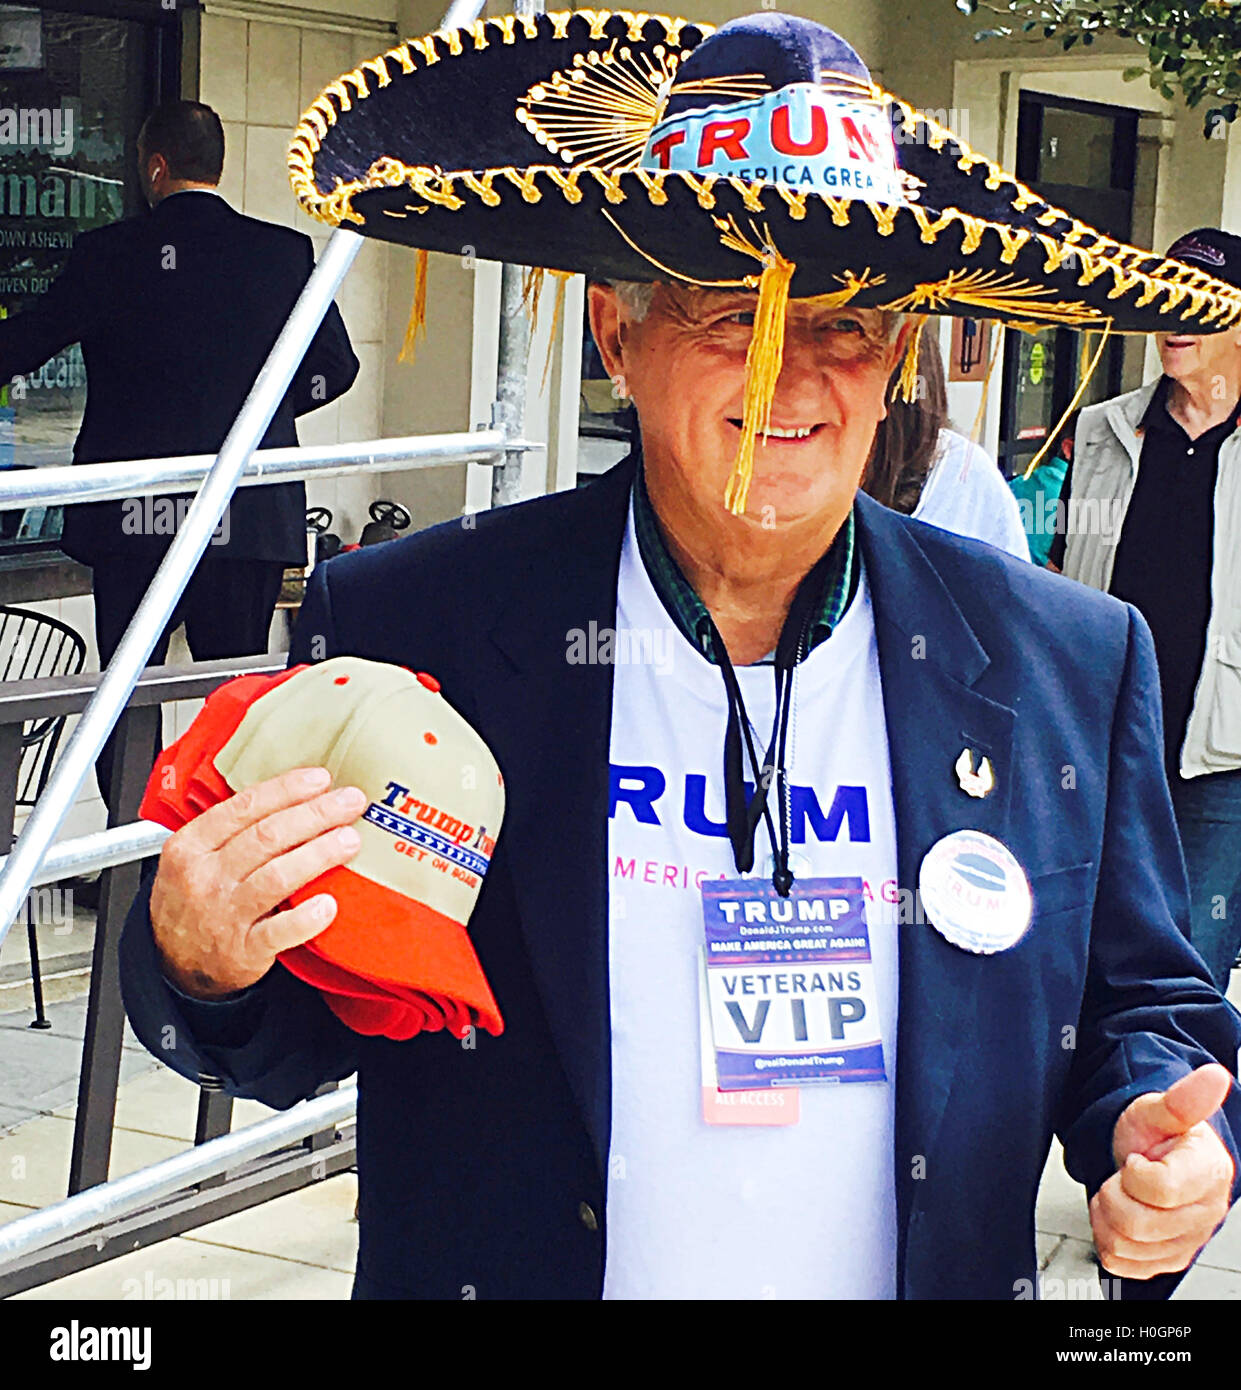 A Donald Trump supporter attends a Trump rally in Asheville, NC wearing a Sombrero with a Trump sticker holding - Stock Image